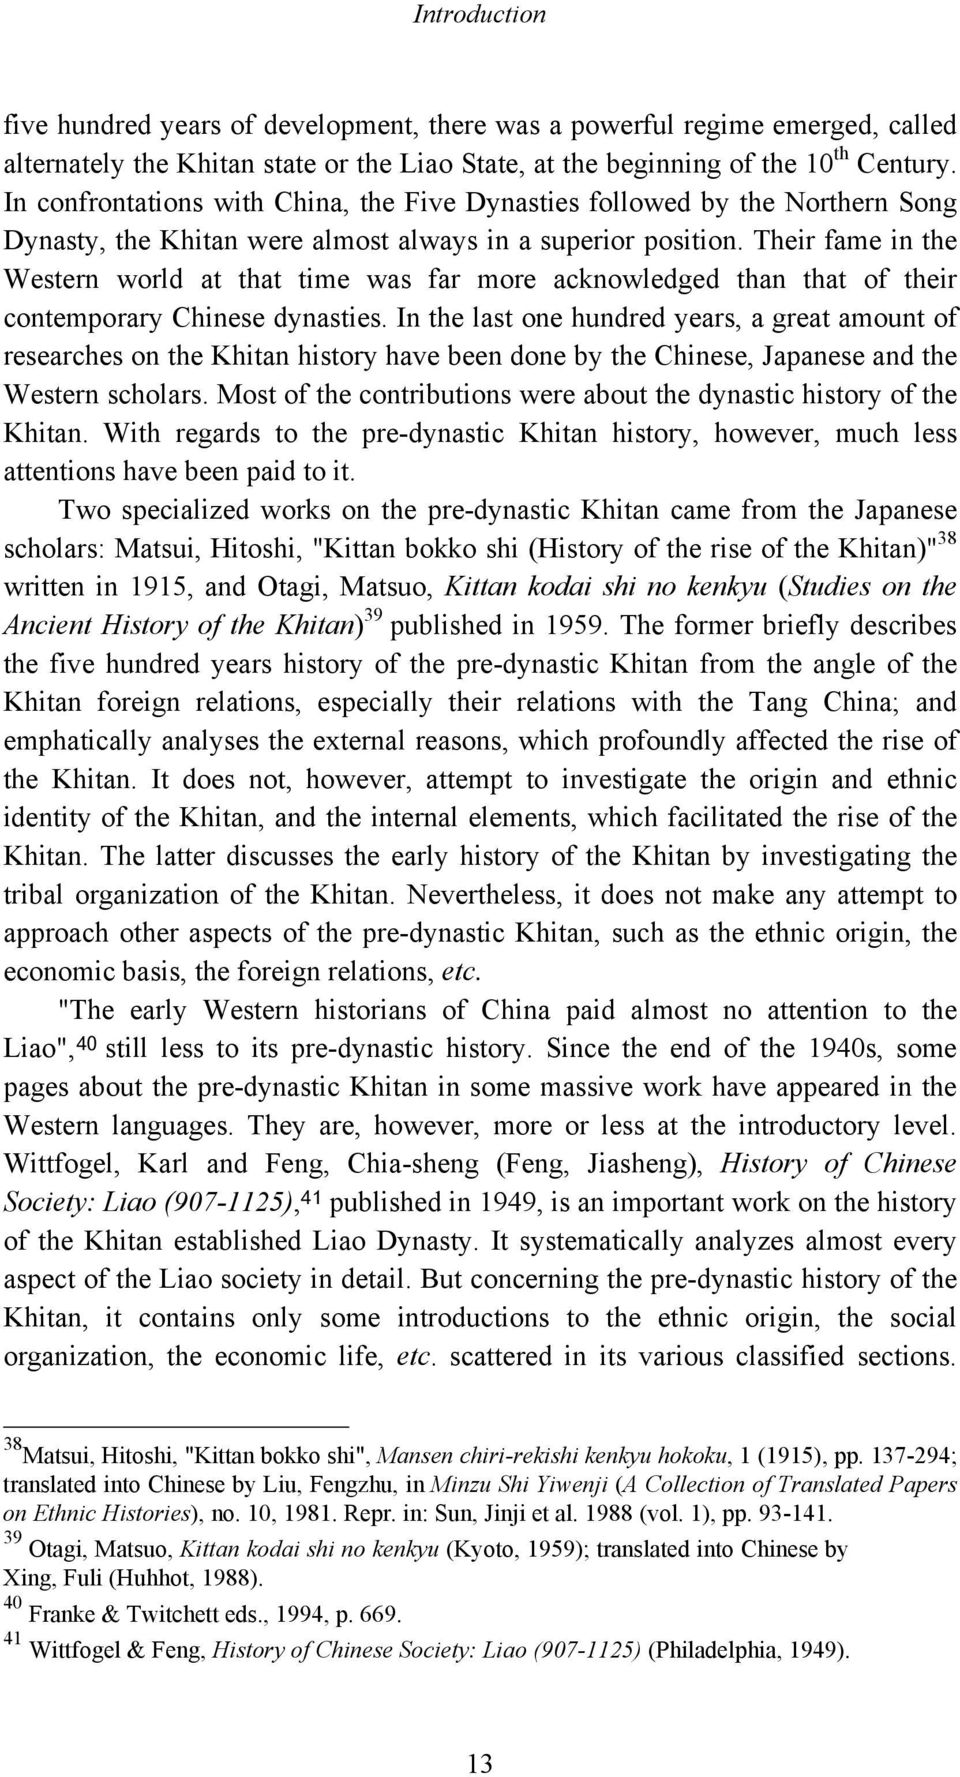 Their fame in the Western world at that time was far more acknowledged than that of their contemporary Chinese dynasties.